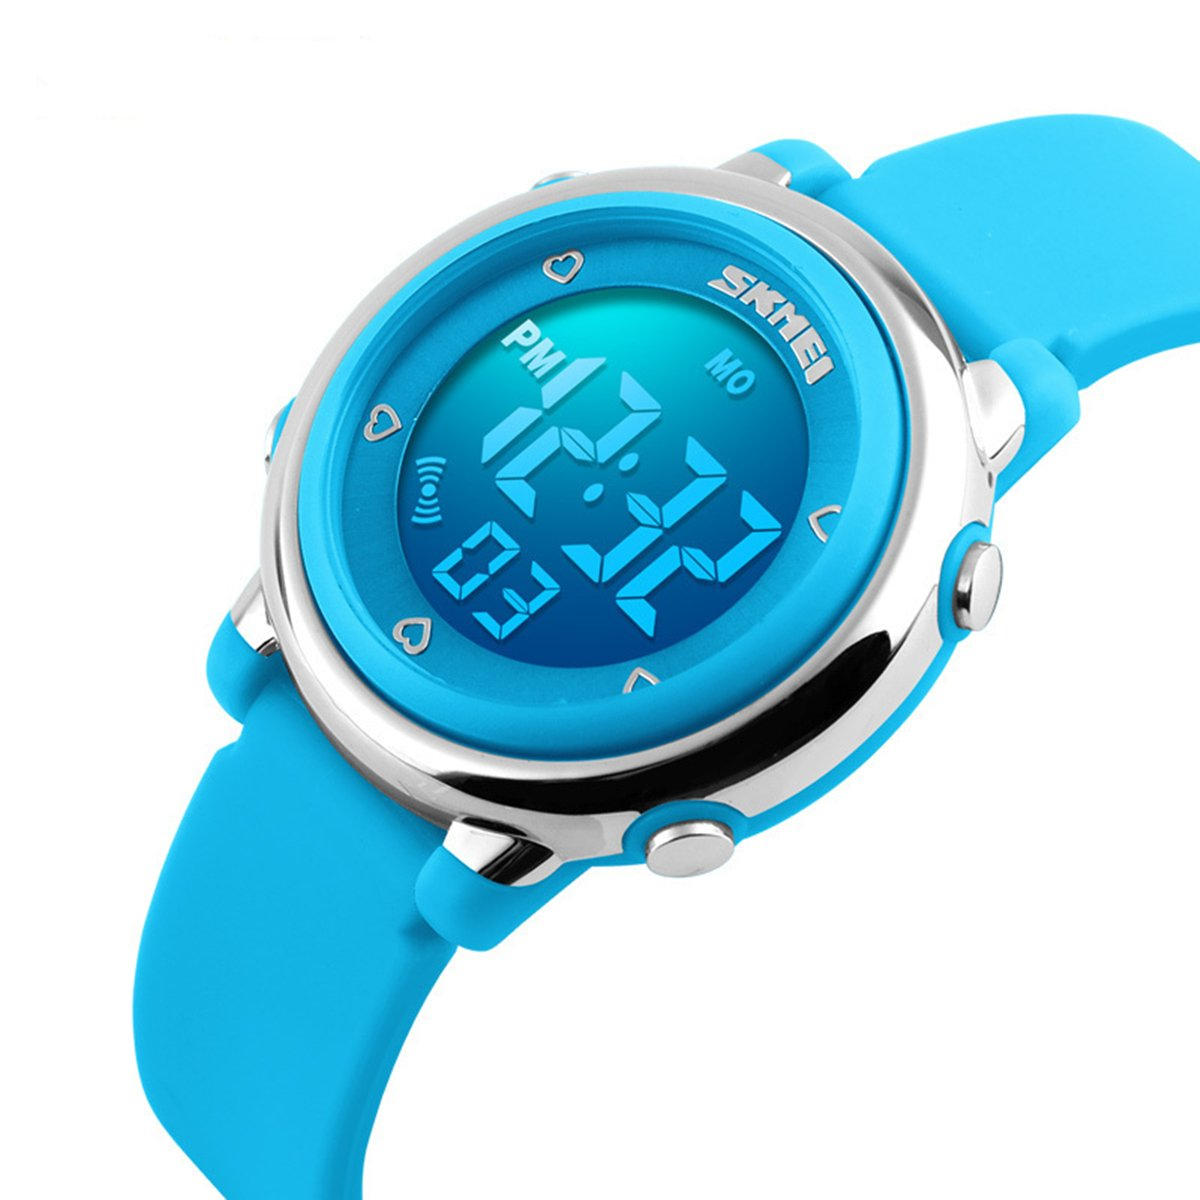 Kids Boys Girls Watches,Digital Sports Watches,Waterproof Outdoor Luminescent MultiFunction LED Wrist Watch (Blue)